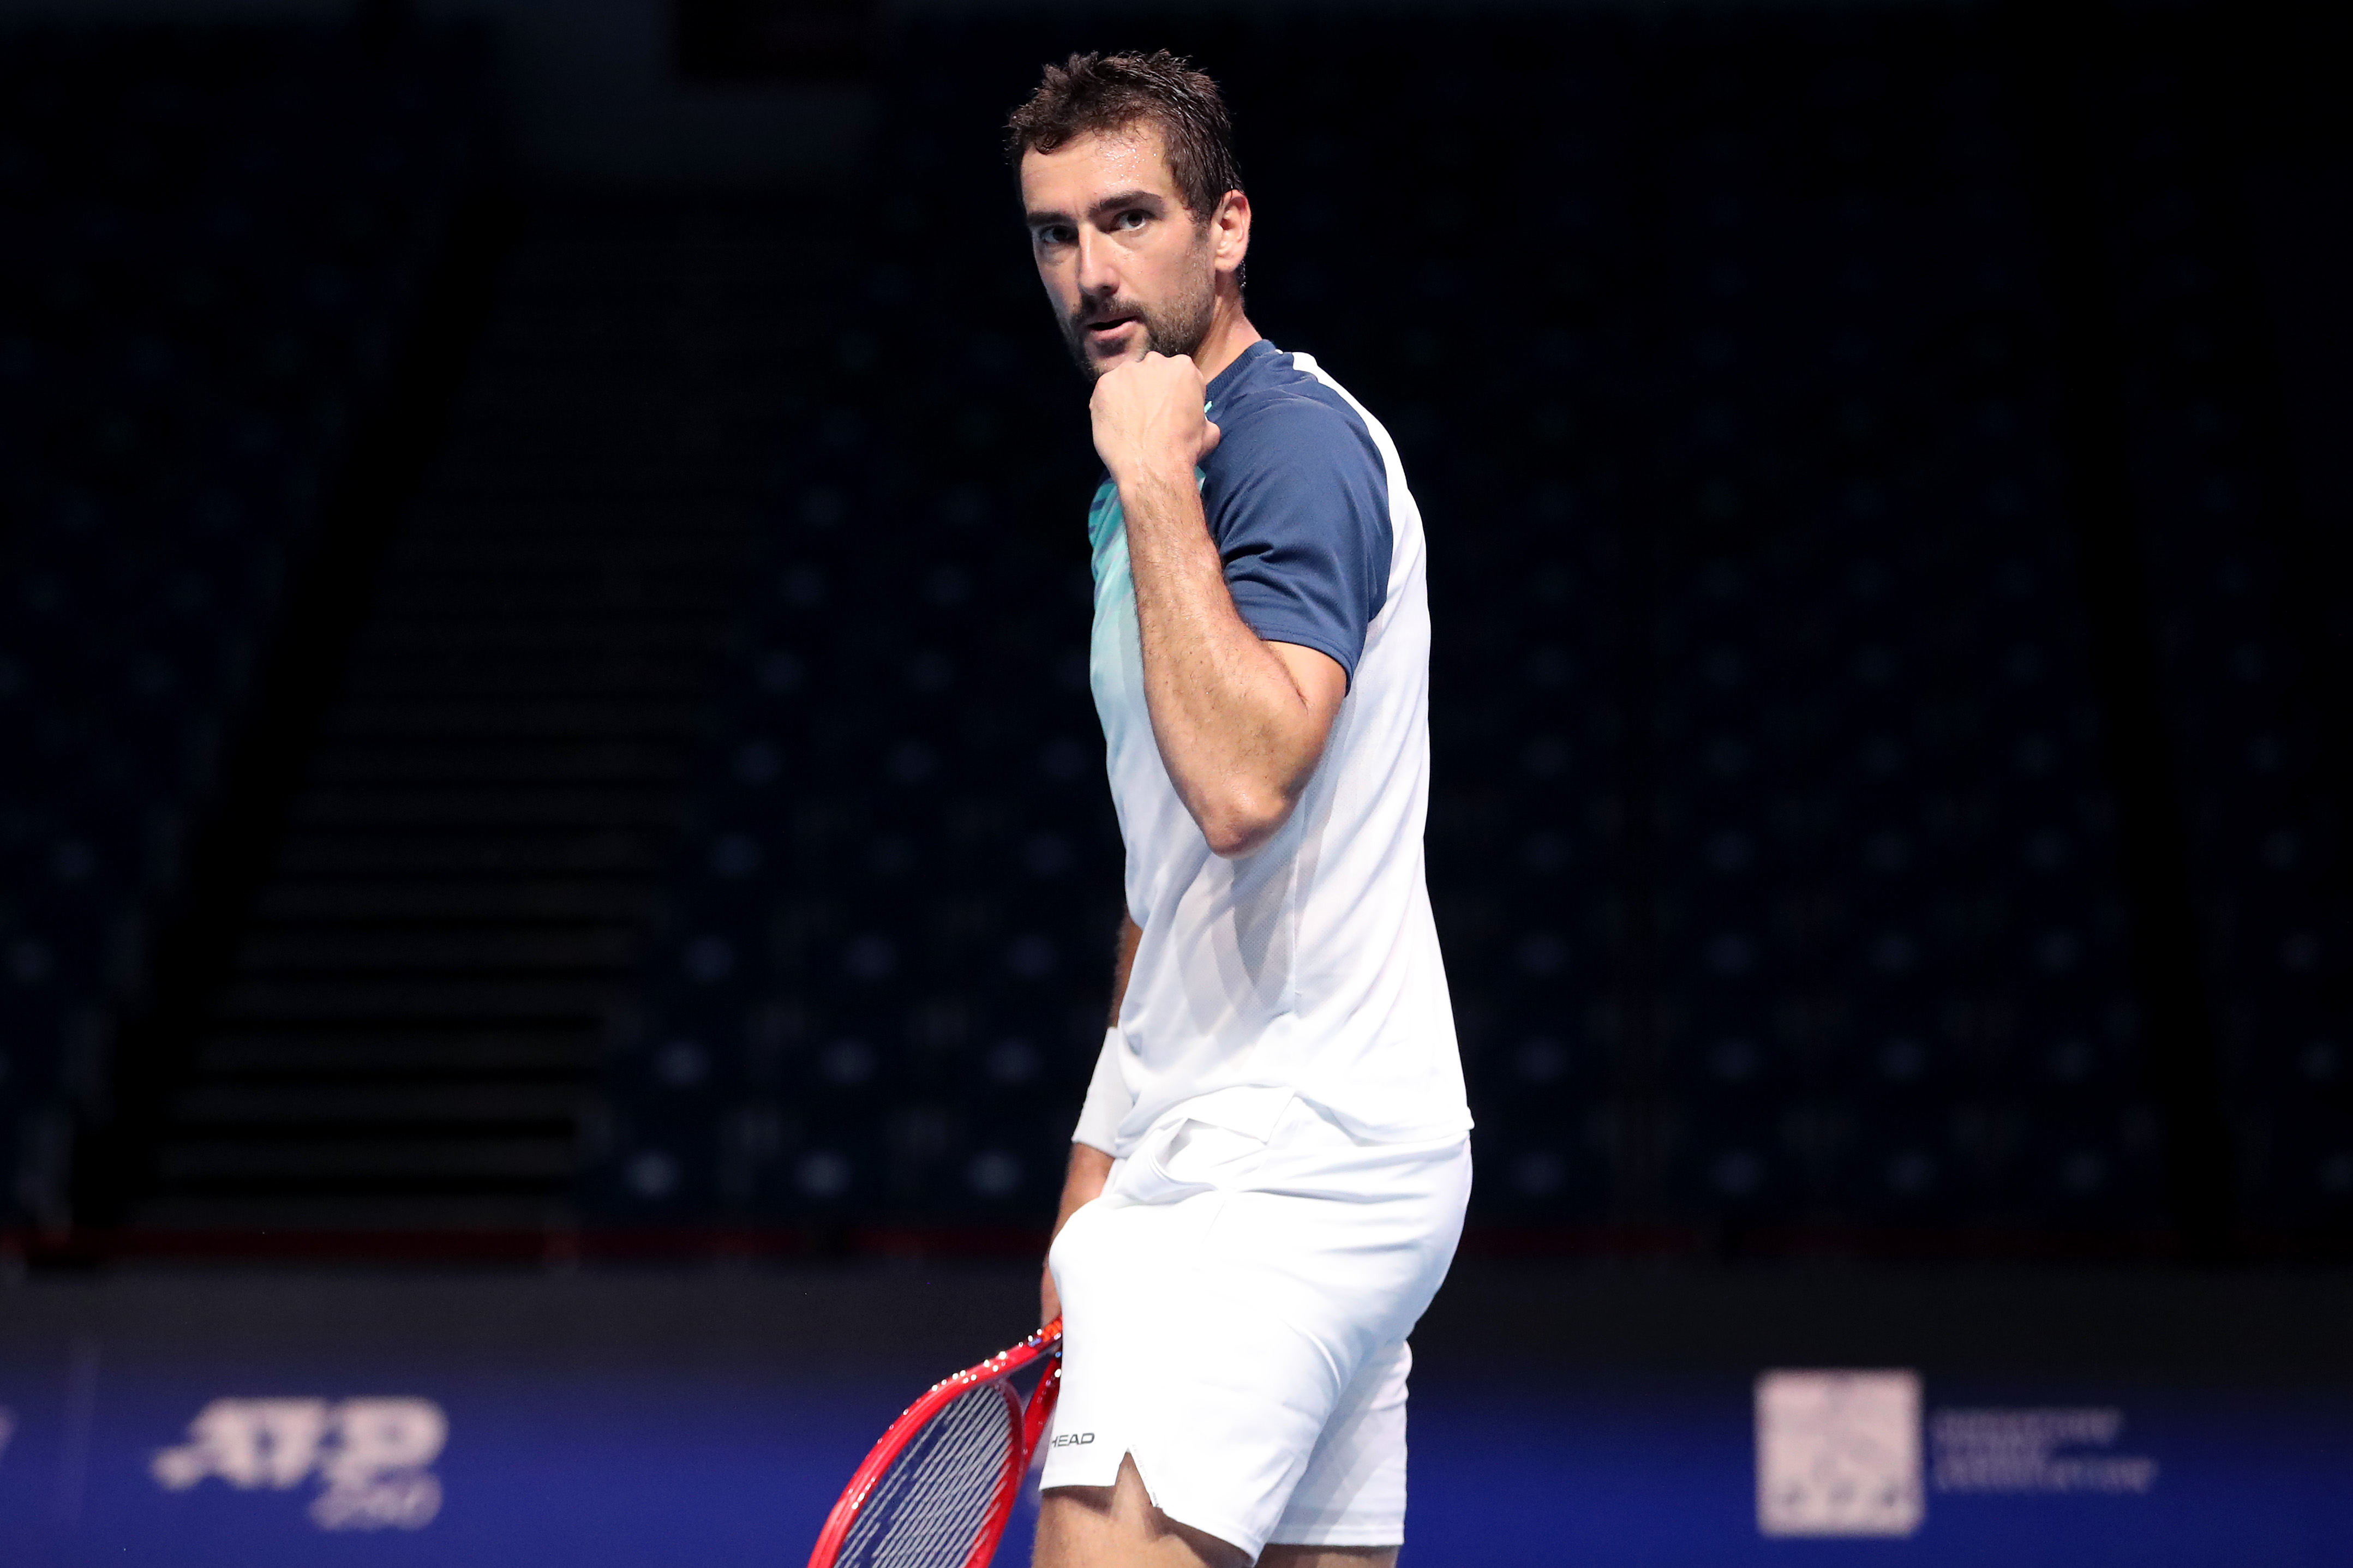 STO 3rd seed Marin Cilic bags his first win of 2021!